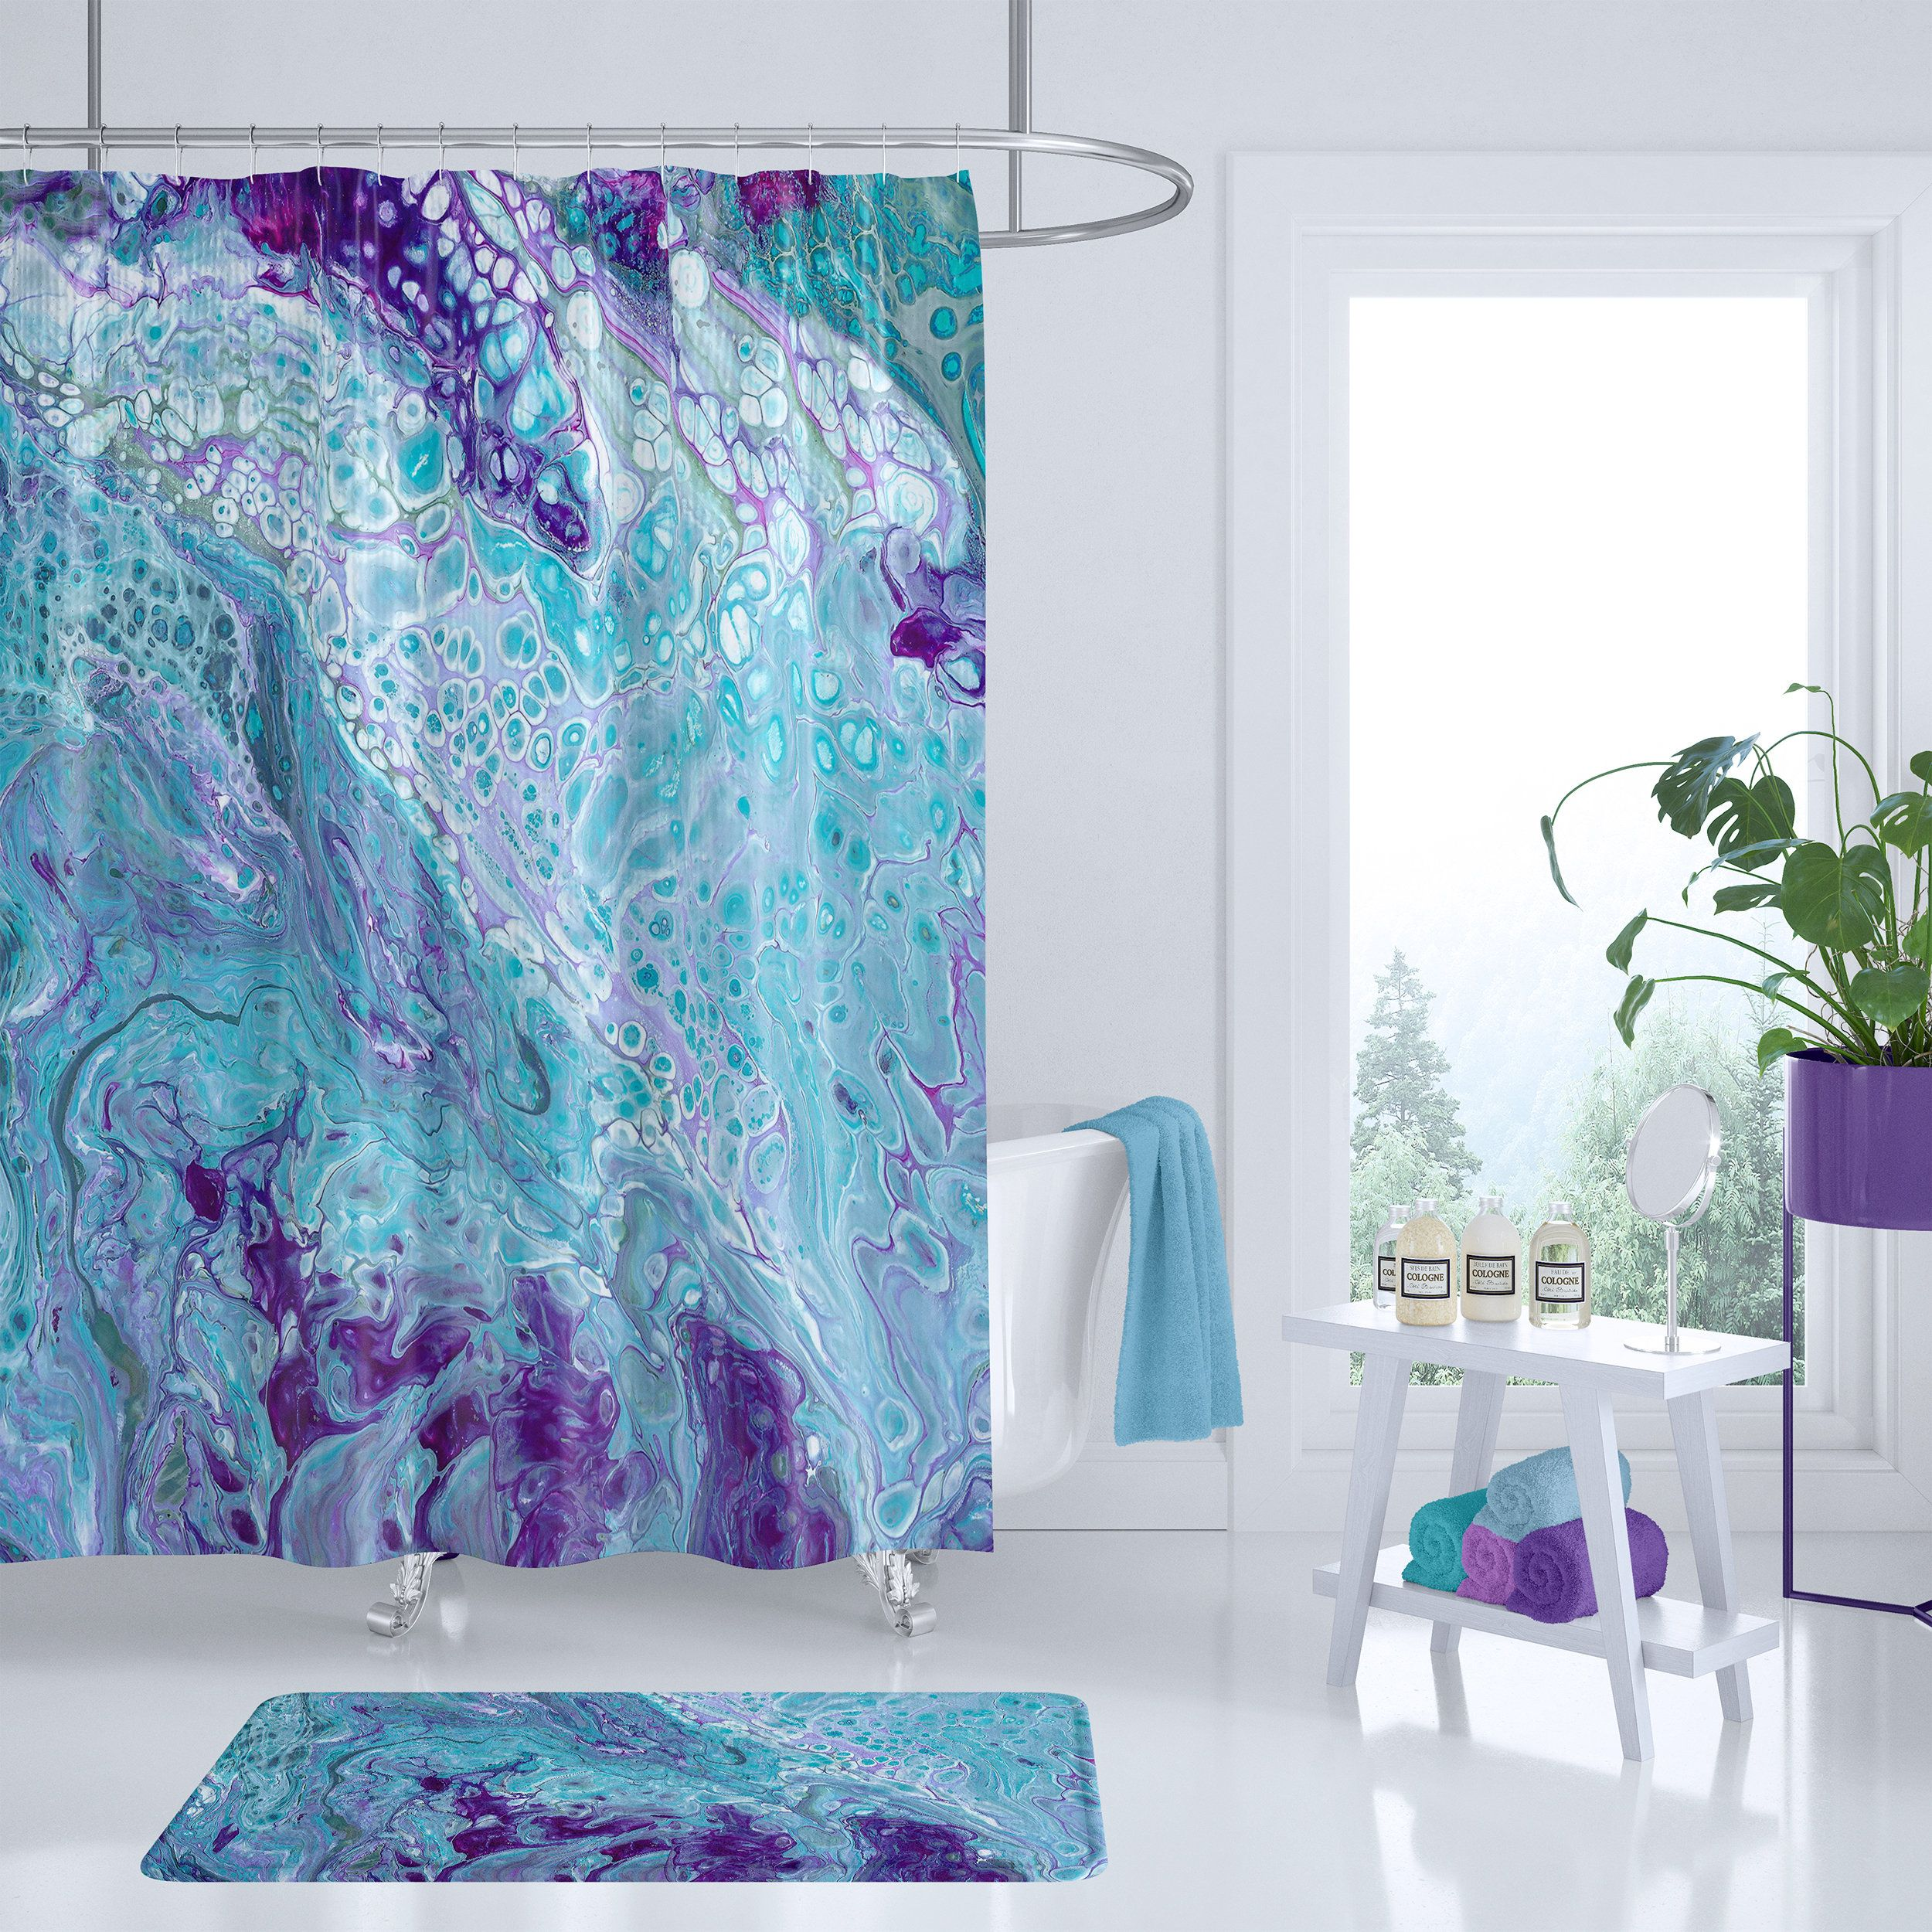 Marble Shower Curtain turquoise and purple, modern